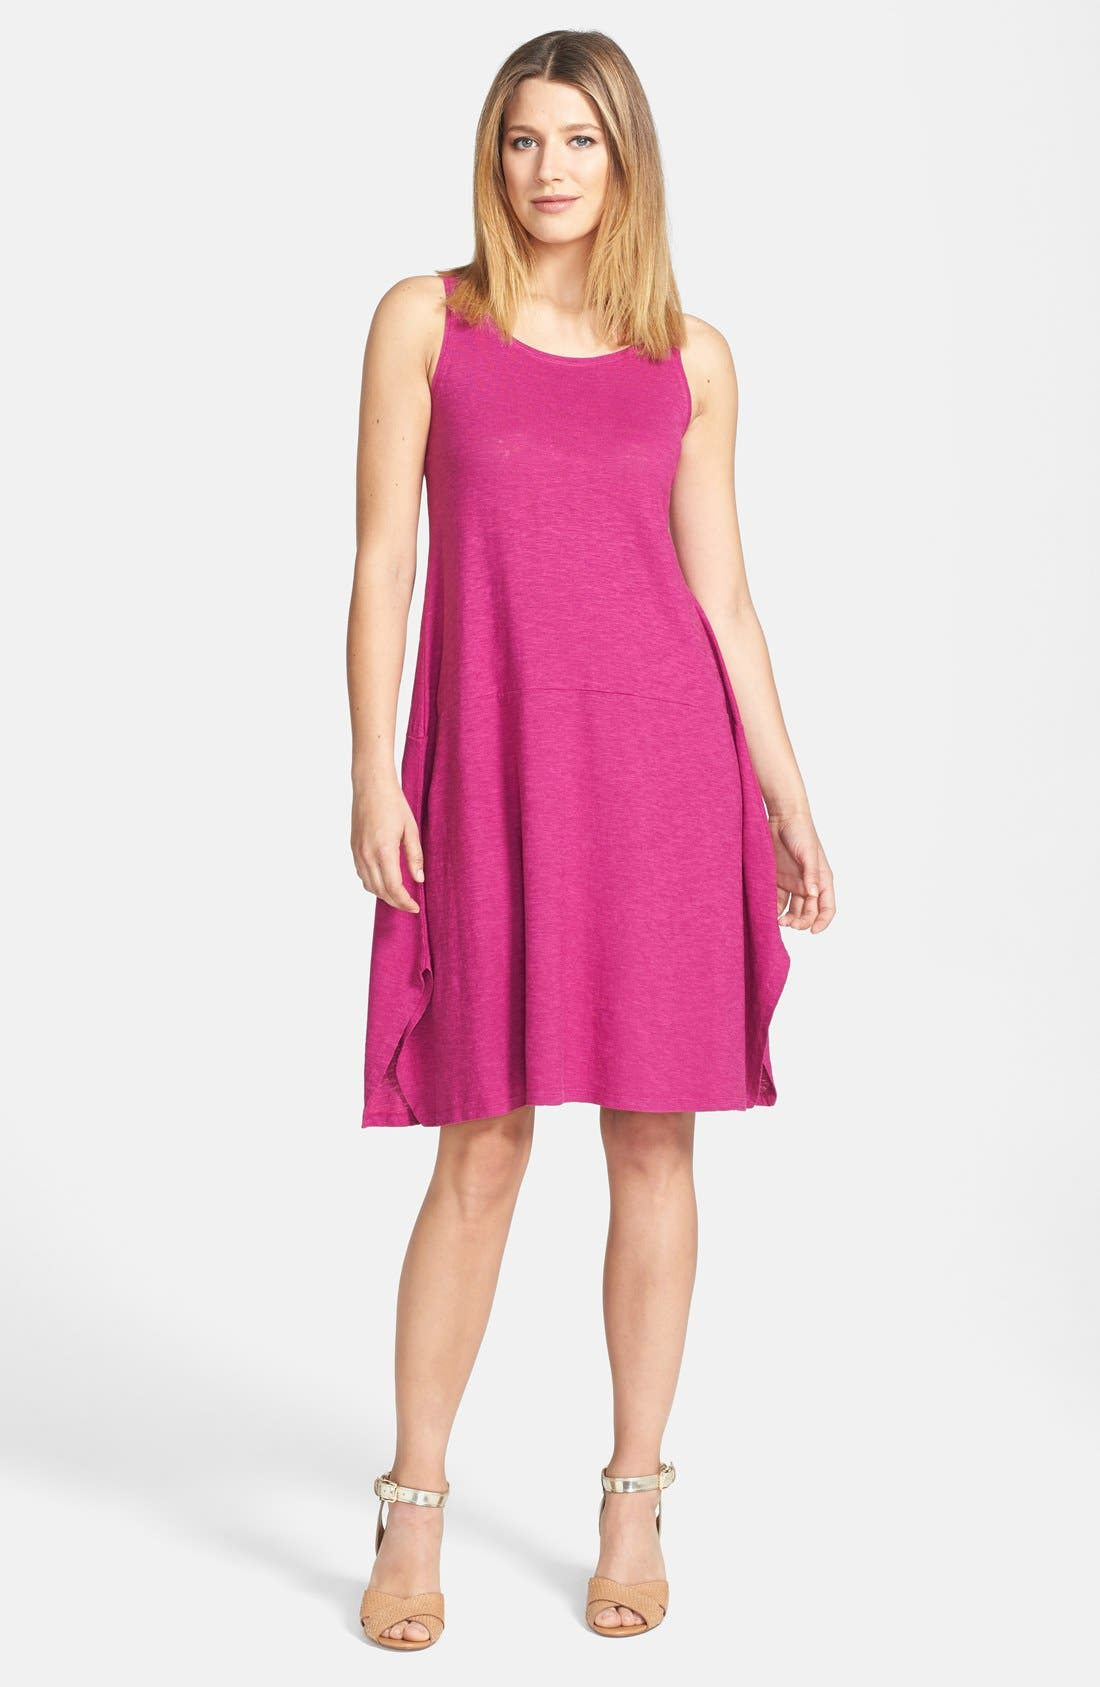 Alternate Image 1 Selected - Eileen Fisher Scoop Neck Hemp & Organic Cotton Knit Dress (Petite)